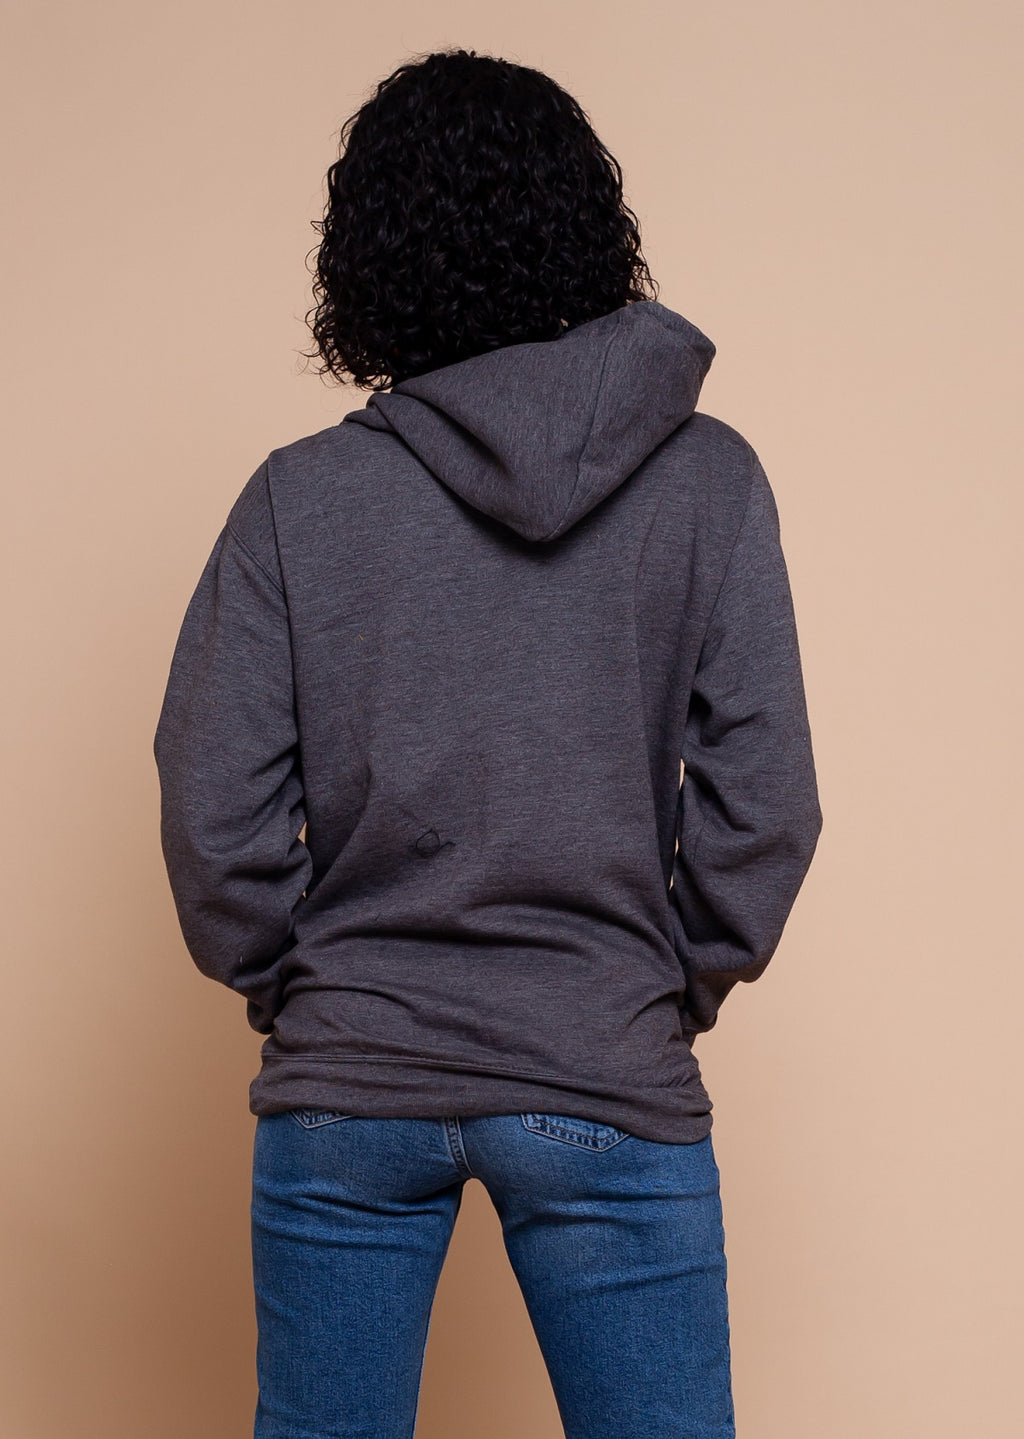 African Map Grey Hoodie Top